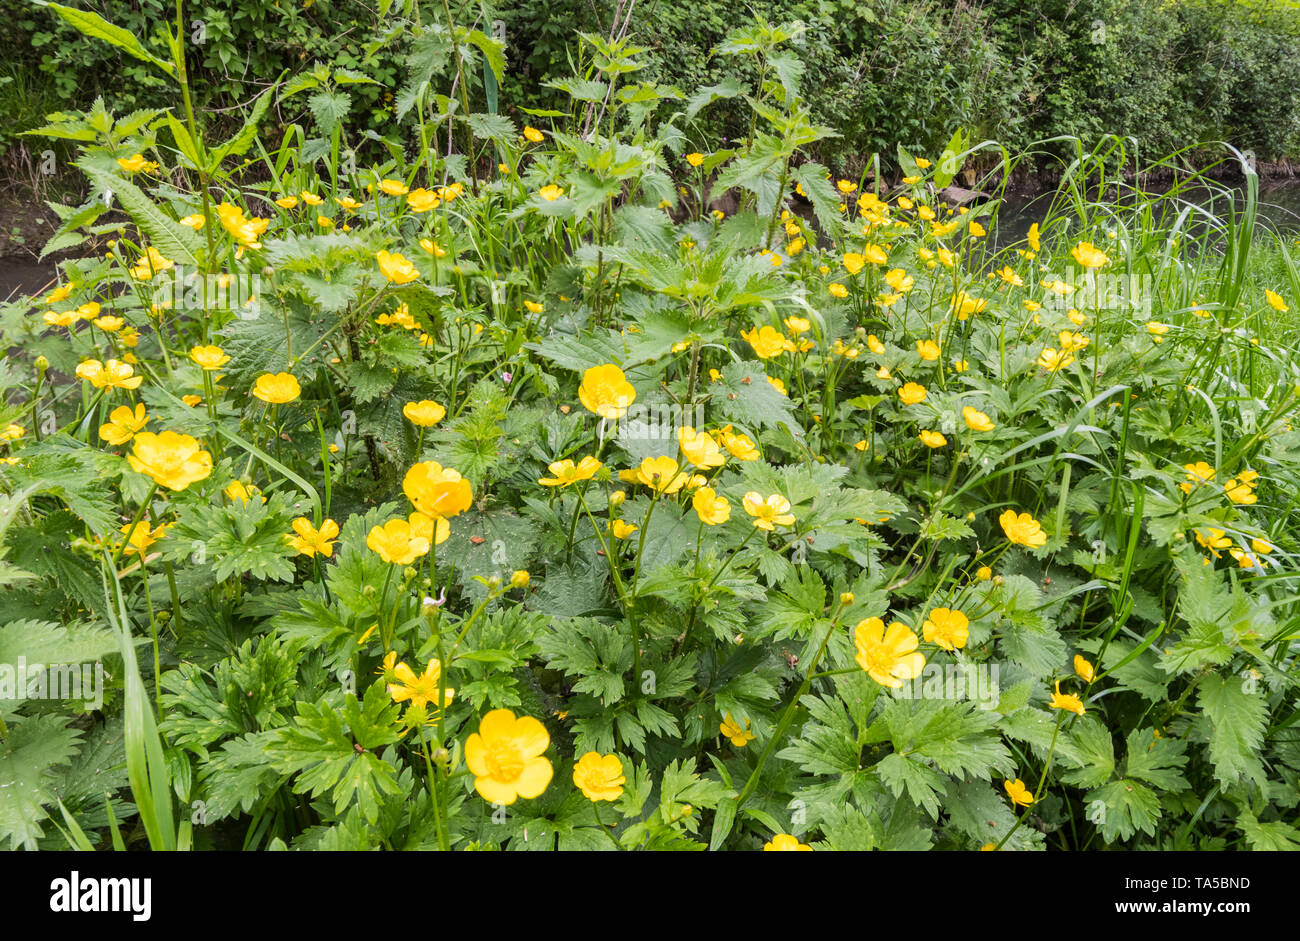 Ranunculus repens (Creeping buttercup, AKA Creeping crowfoot & Sitfast) in Spring in England, UK. Yellow Buttercups. - Stock Image